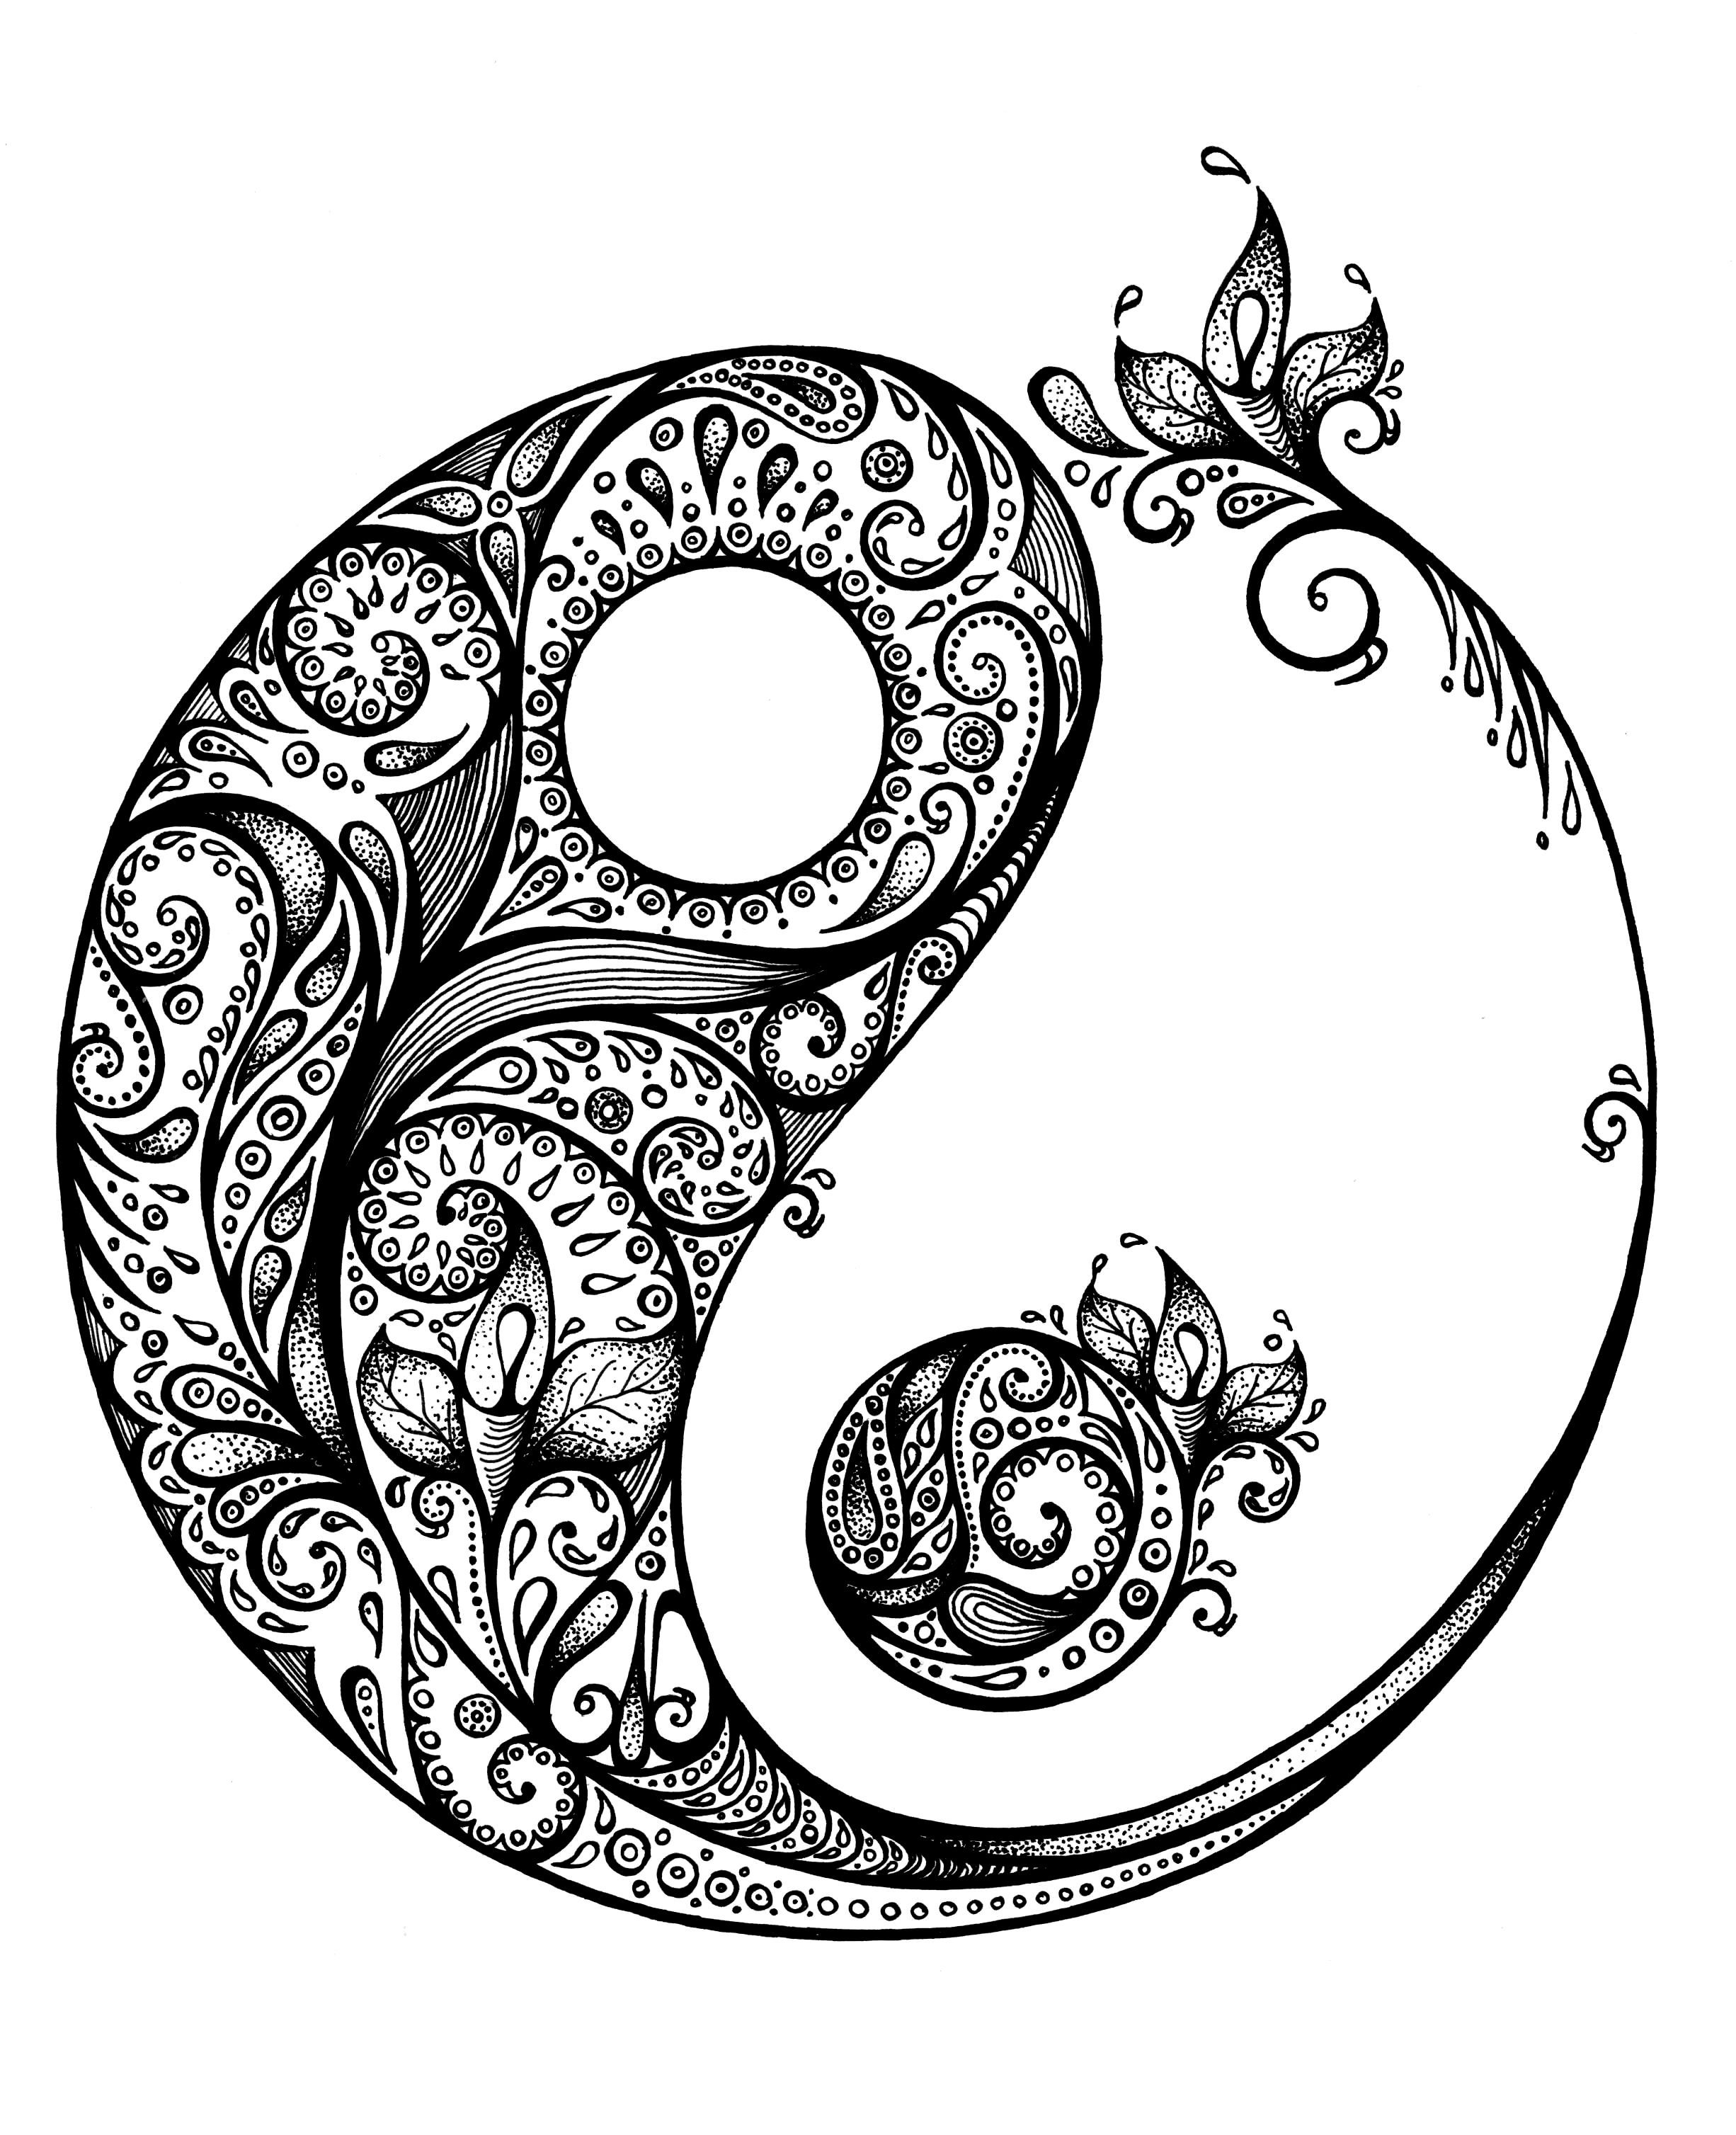 Tattoo Ideen Zeichnen Yin Yang Yin Yang Tattoos Wall Art Pictures